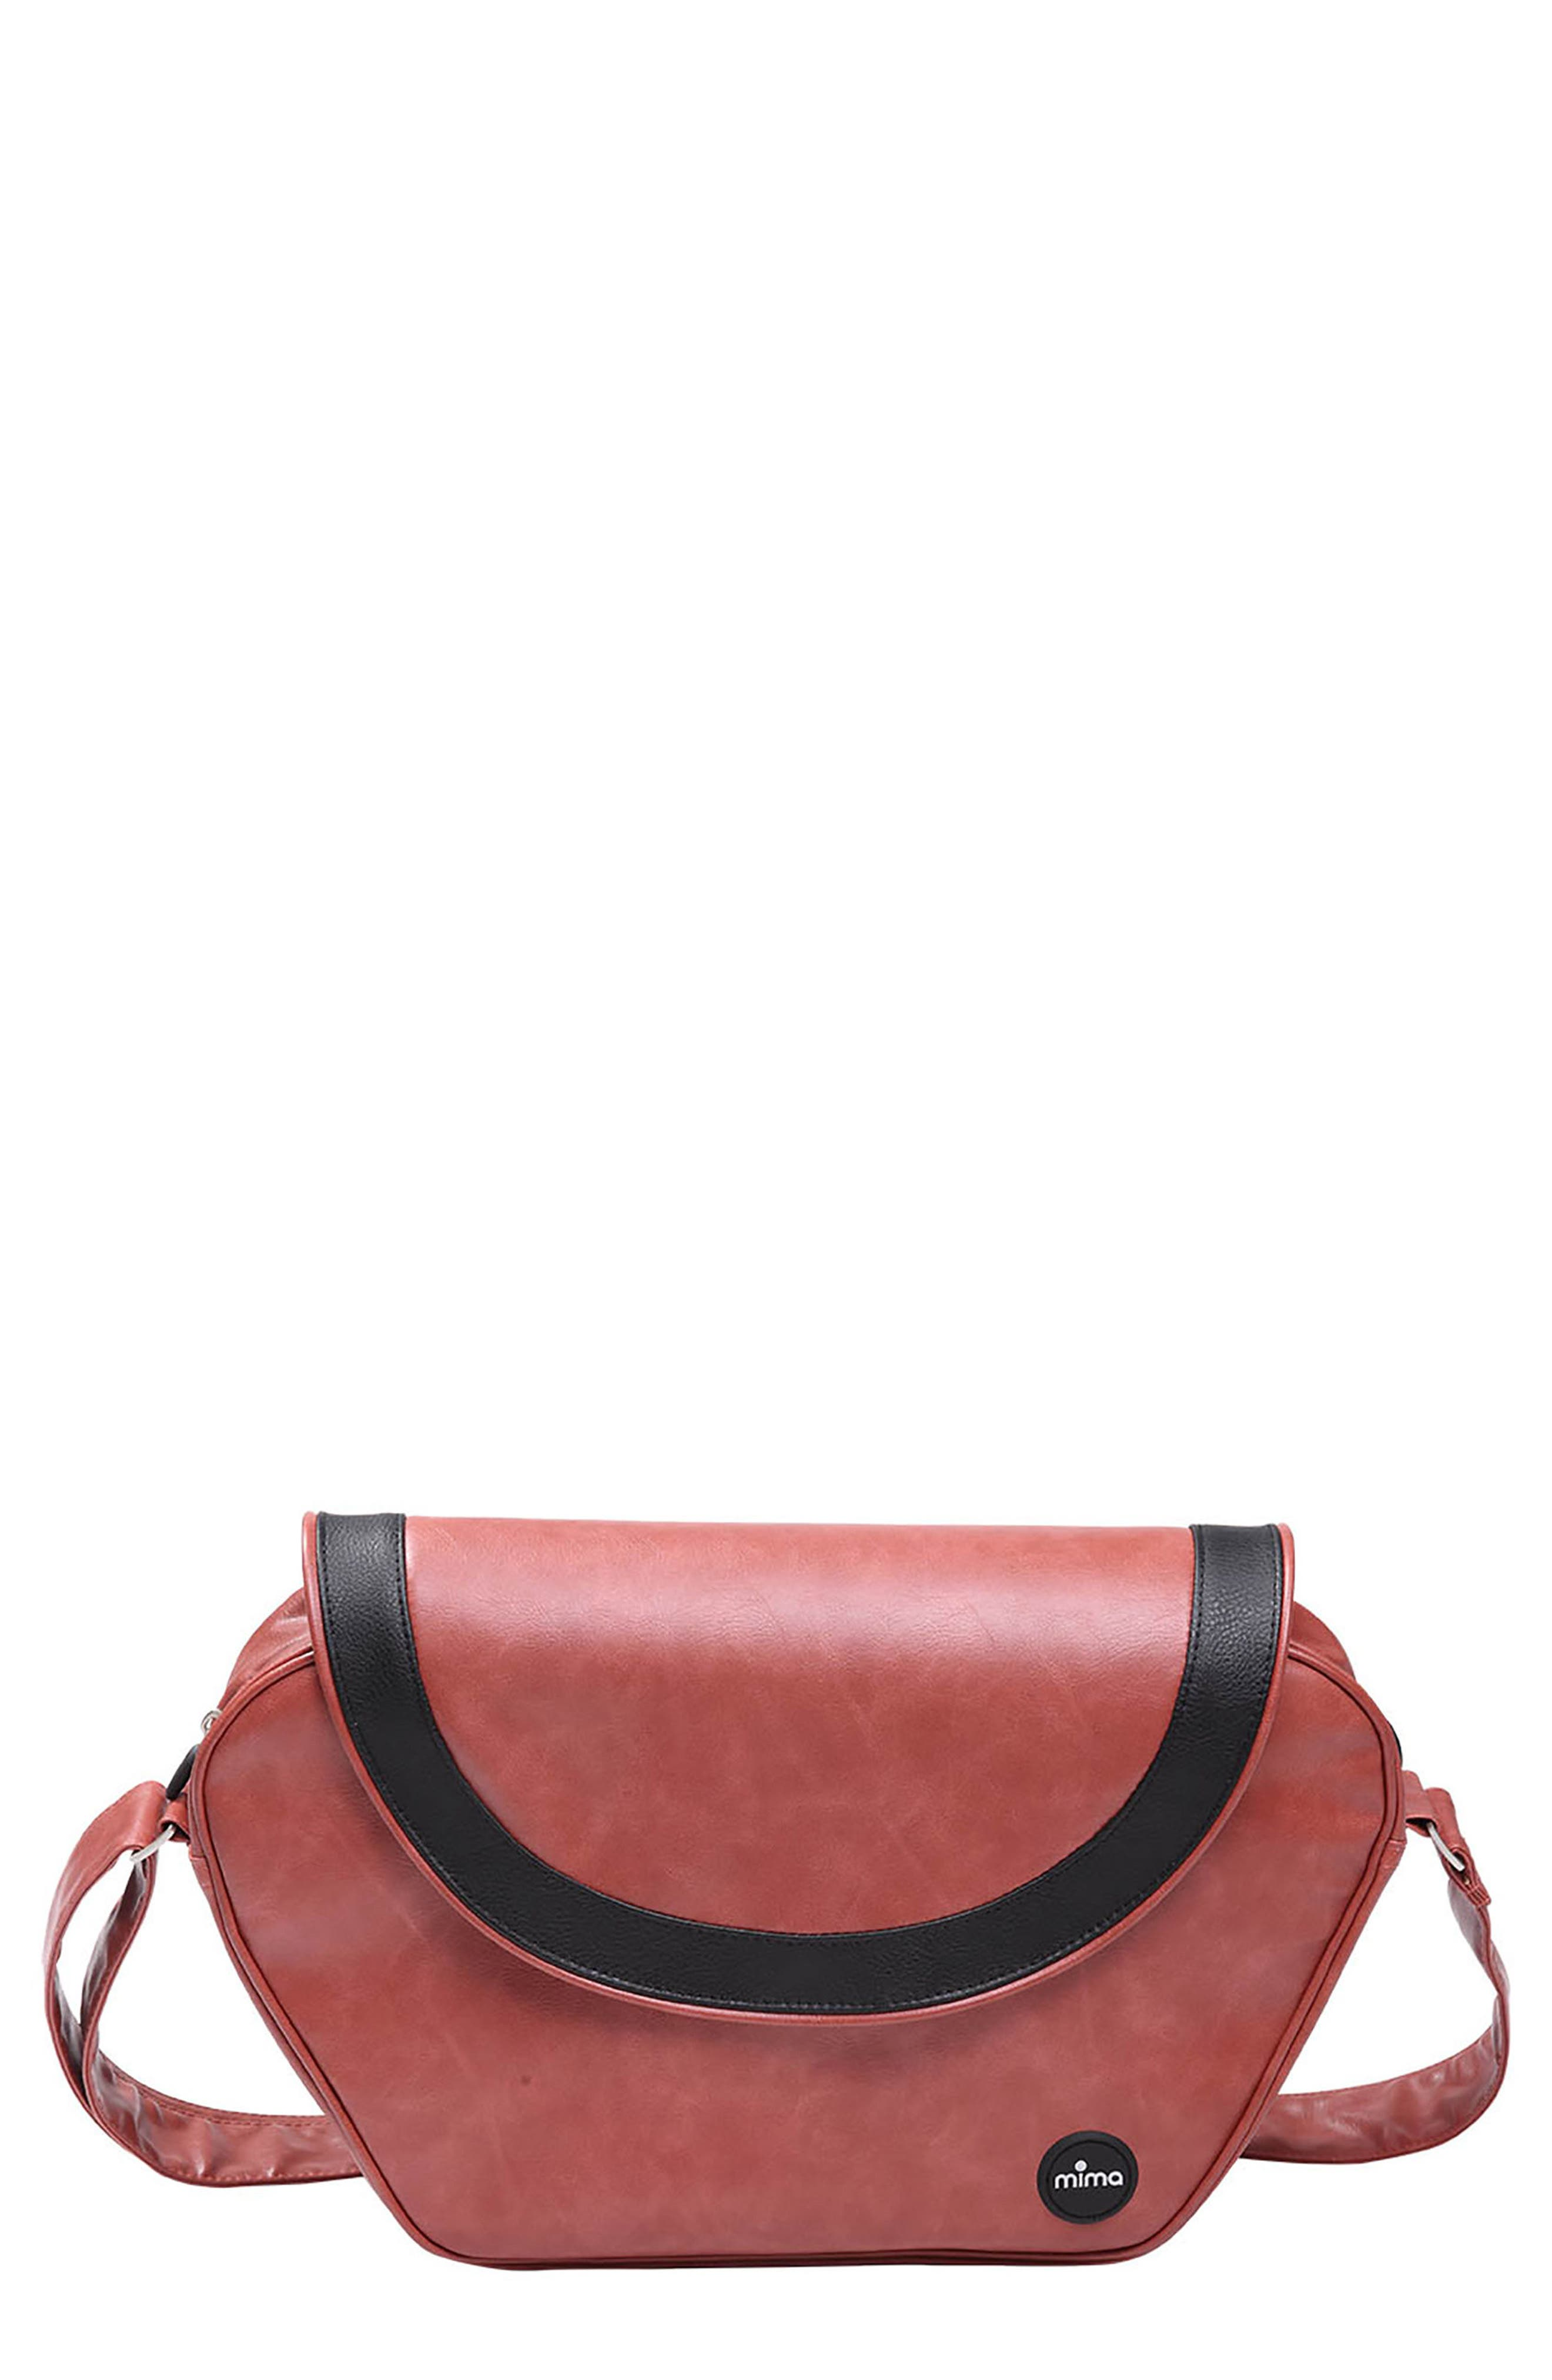 Alternate Image 1 Selected - Mima Trendy Faux Leather Diaper Bag